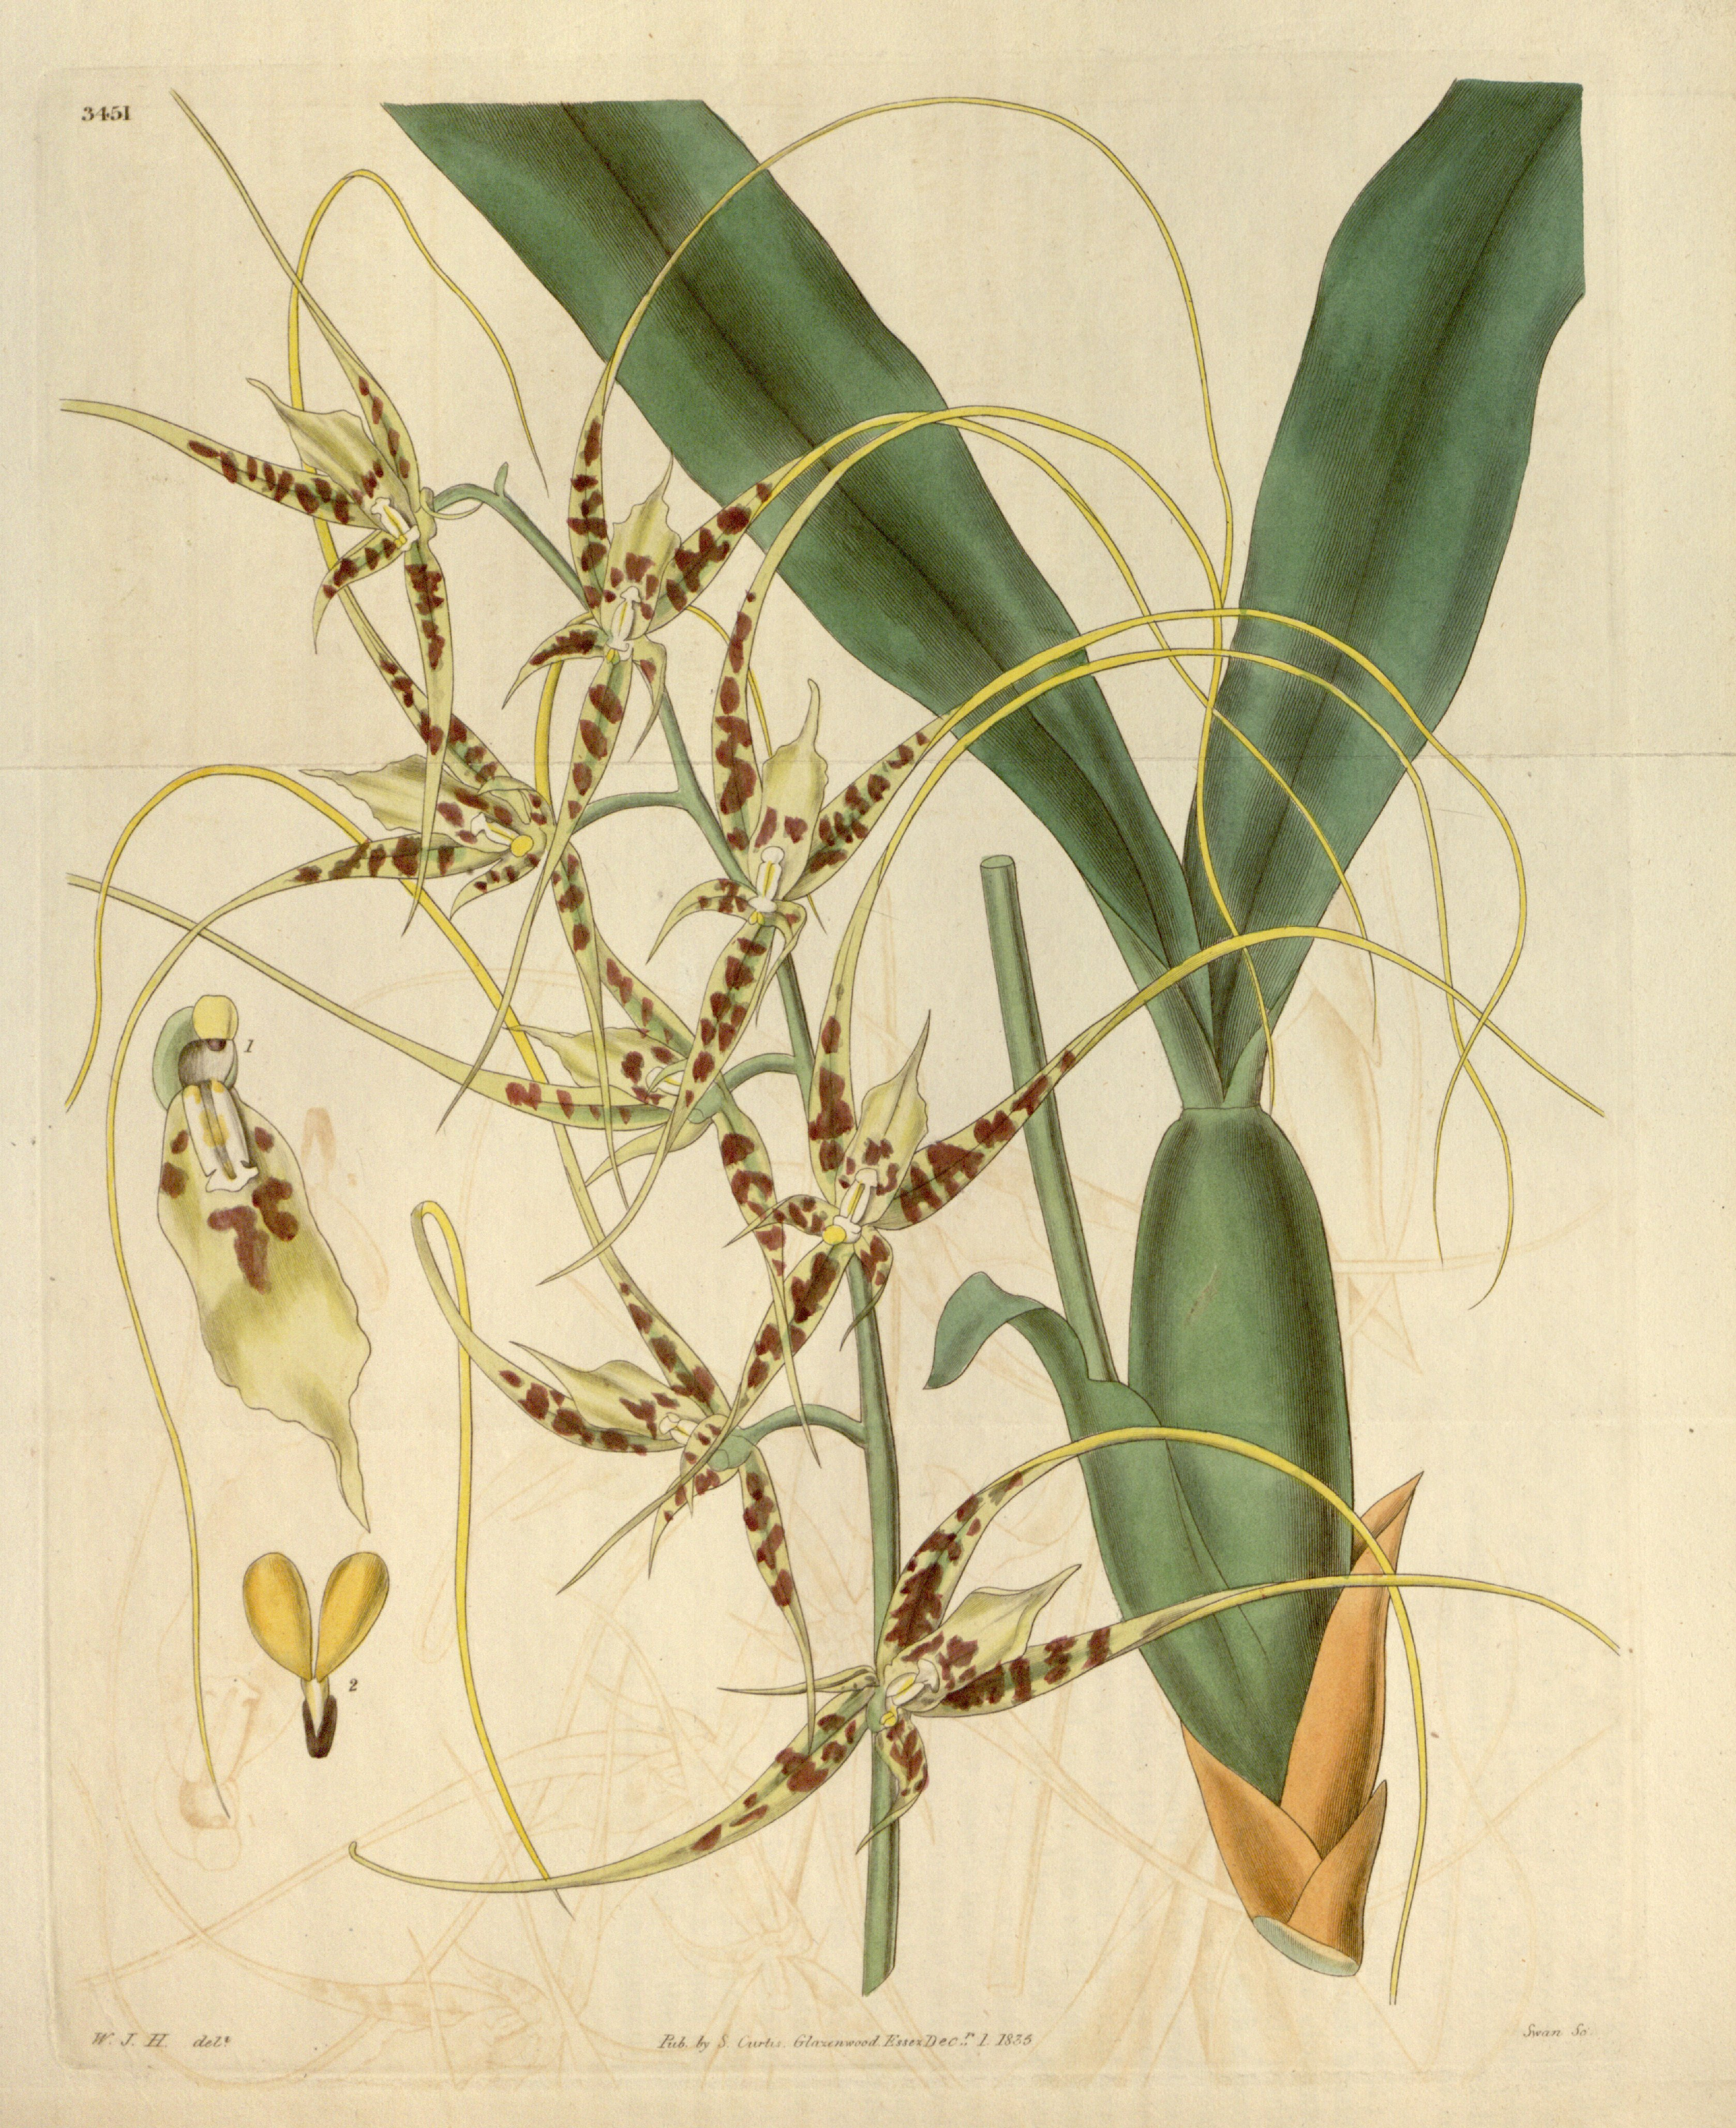 Image of cricket orchid